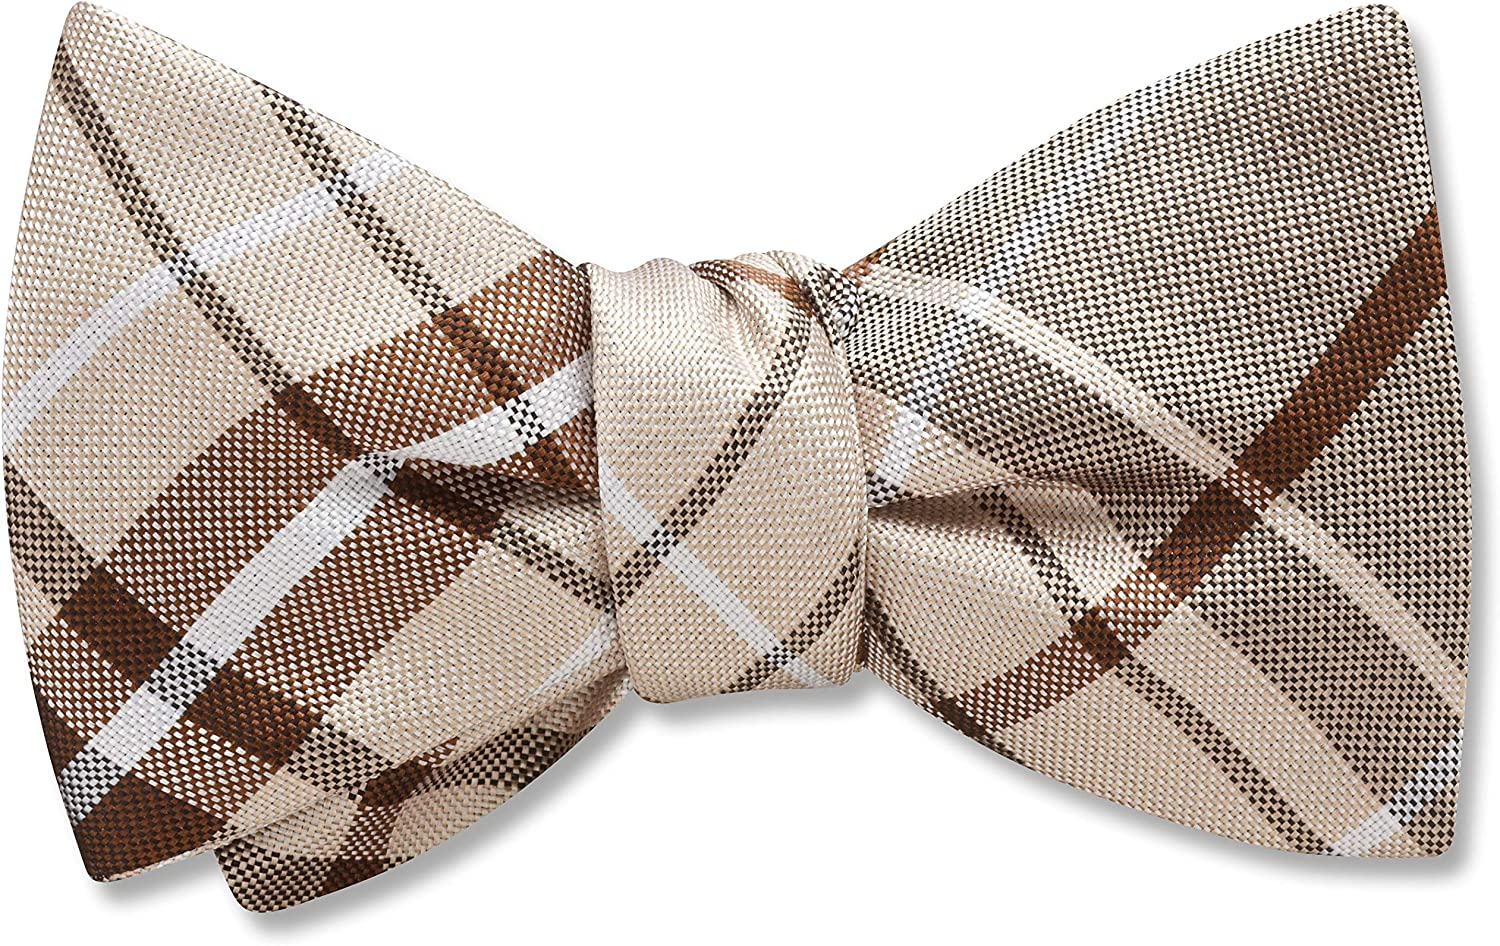 Mansfield Champagne Brown,White Plaid, Men's Bow Tie, Handmade in the USA